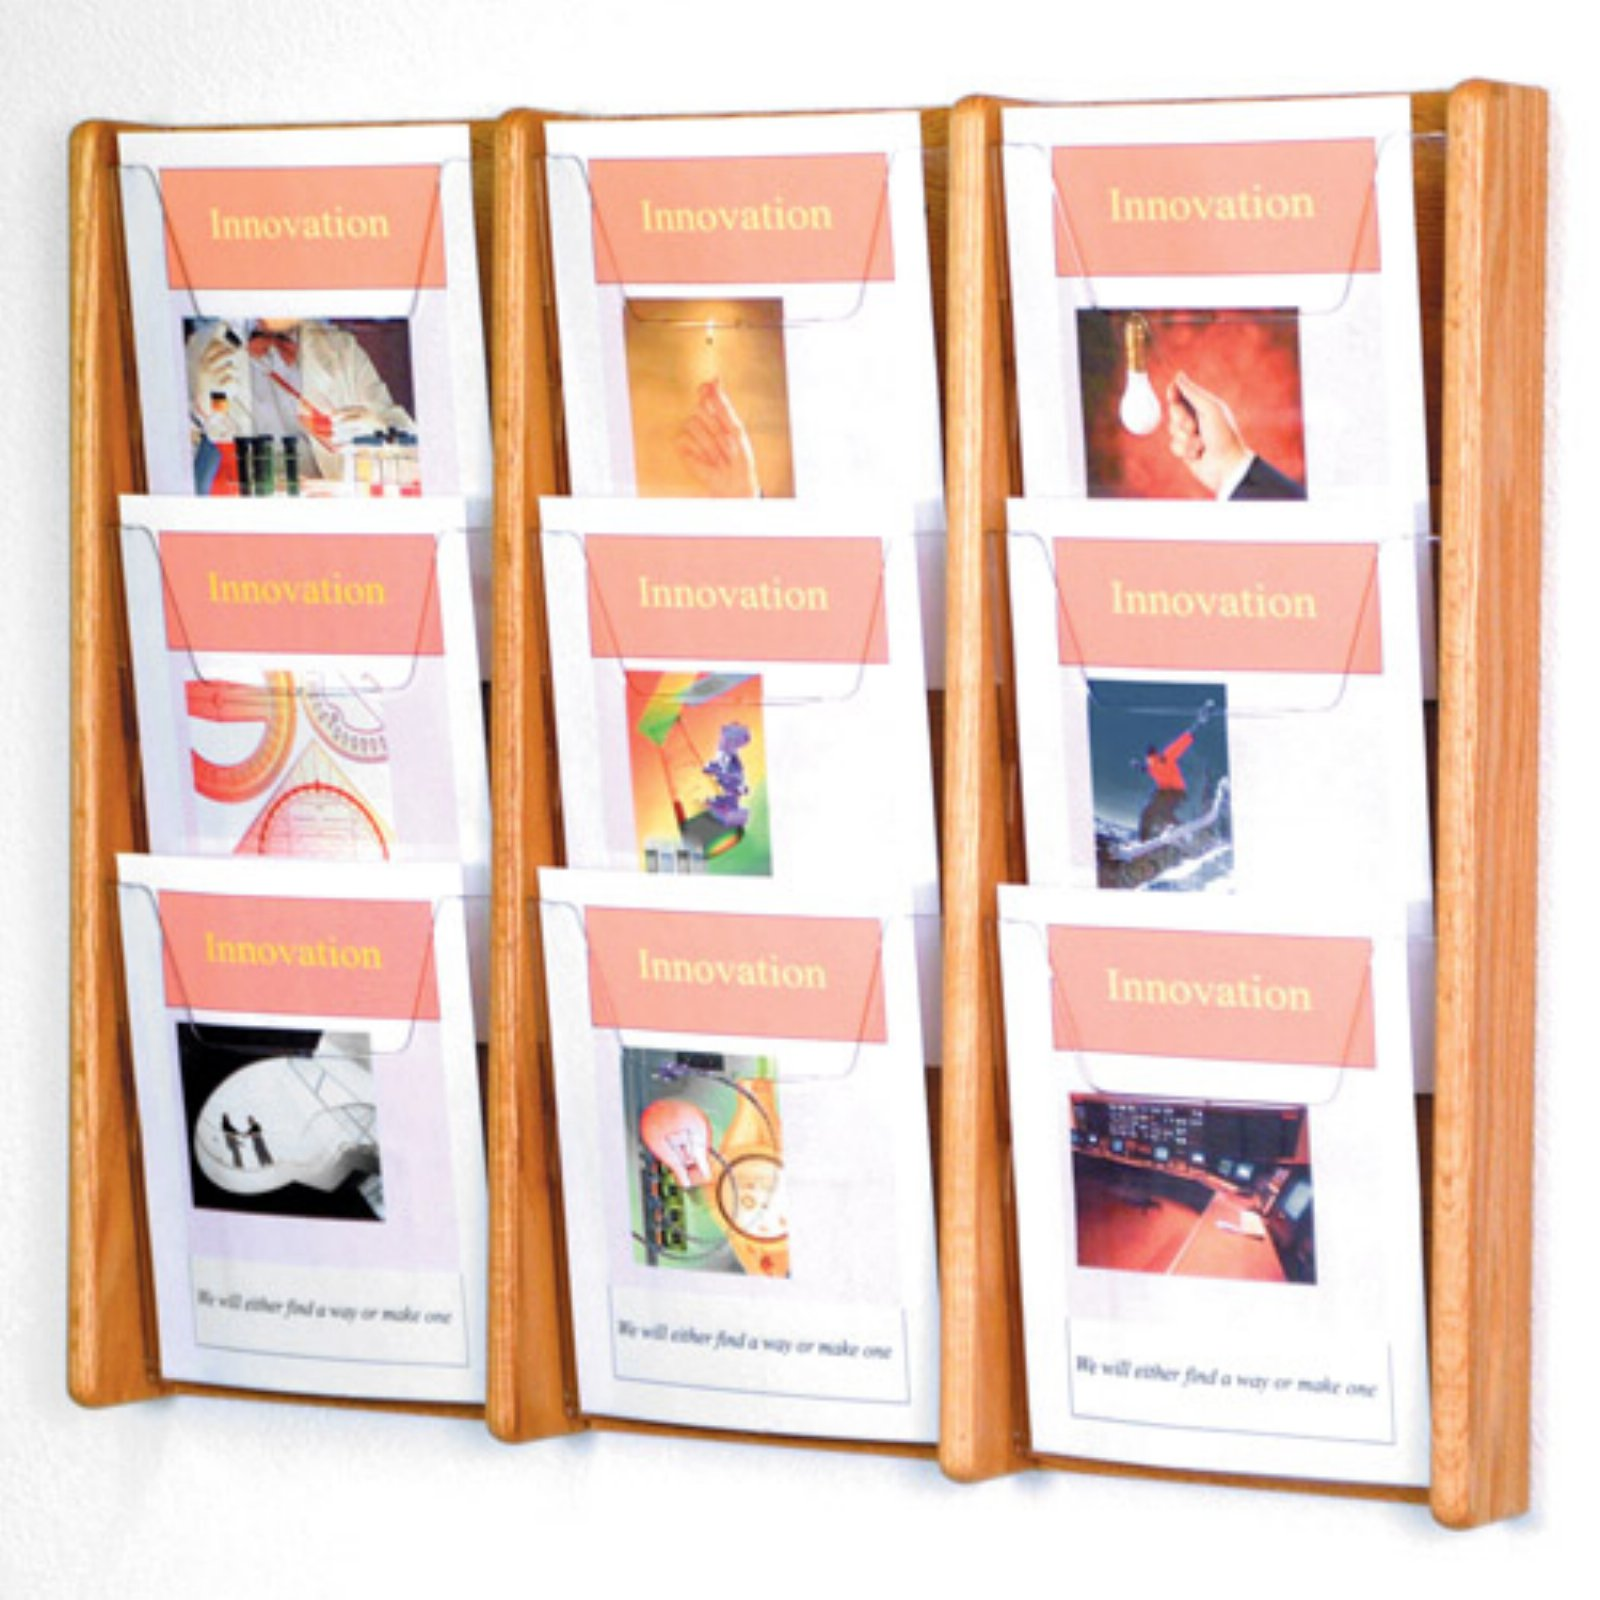 9-Pocket Solid Wood Wall Magazine Rack by Wooden Mallet